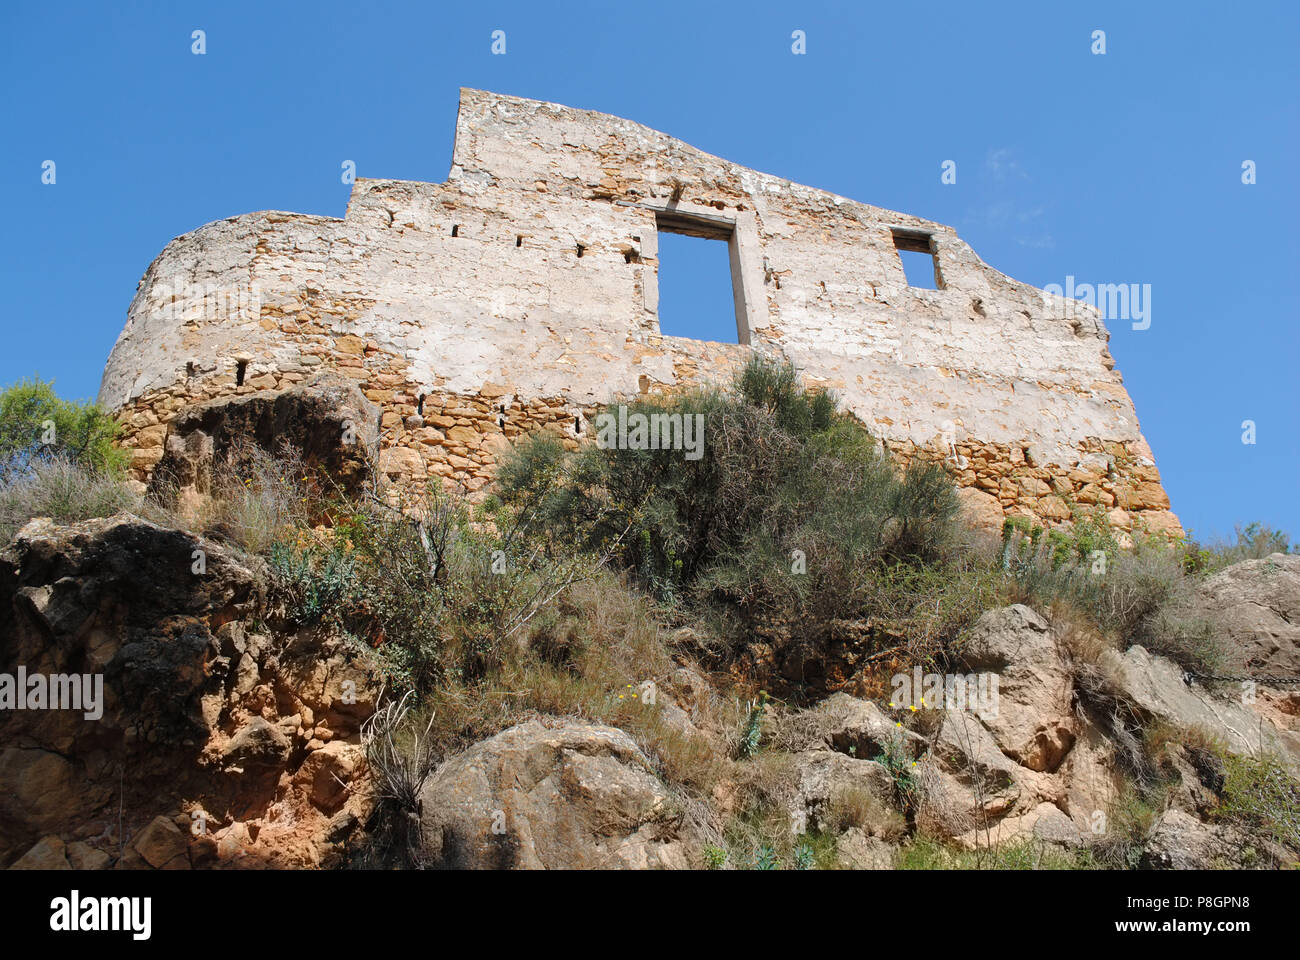 The wall of Camarasa Castle. - Stock Image